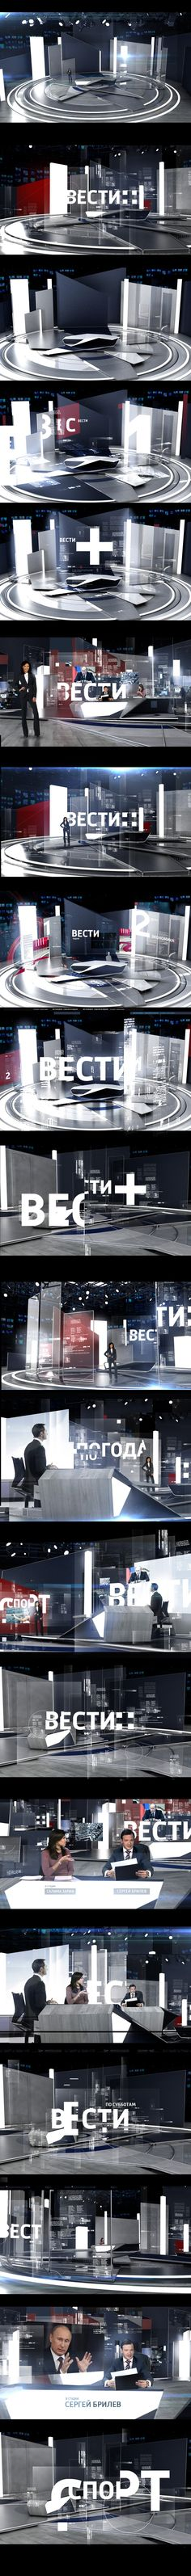 RUSSIA_1 channel NEWS STUDIO on Behance